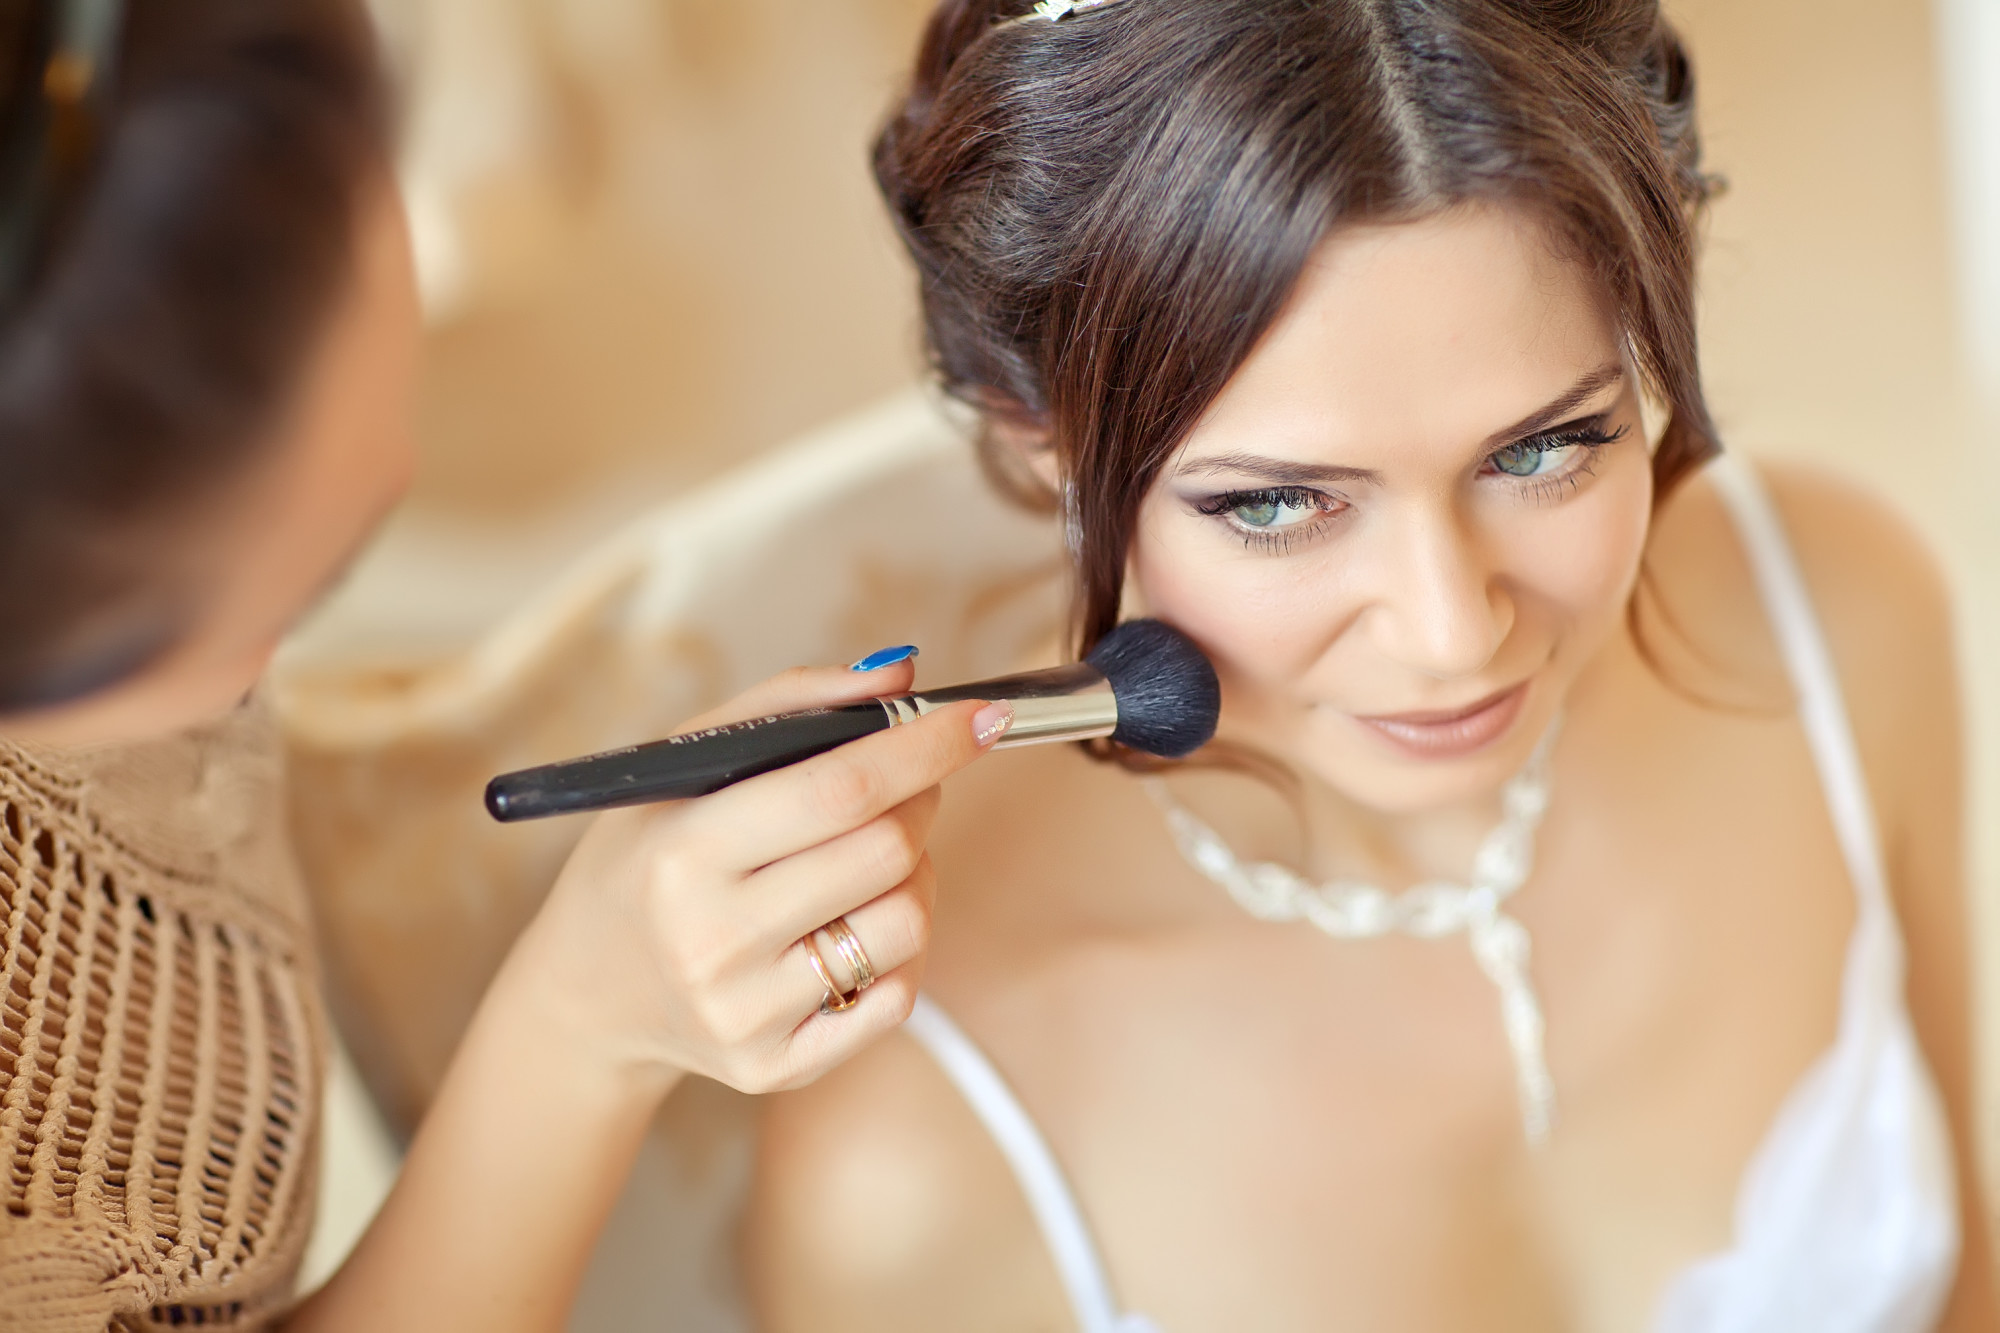 6 Reasons to Hire a Professional to Do Your Wedding Day Makeup